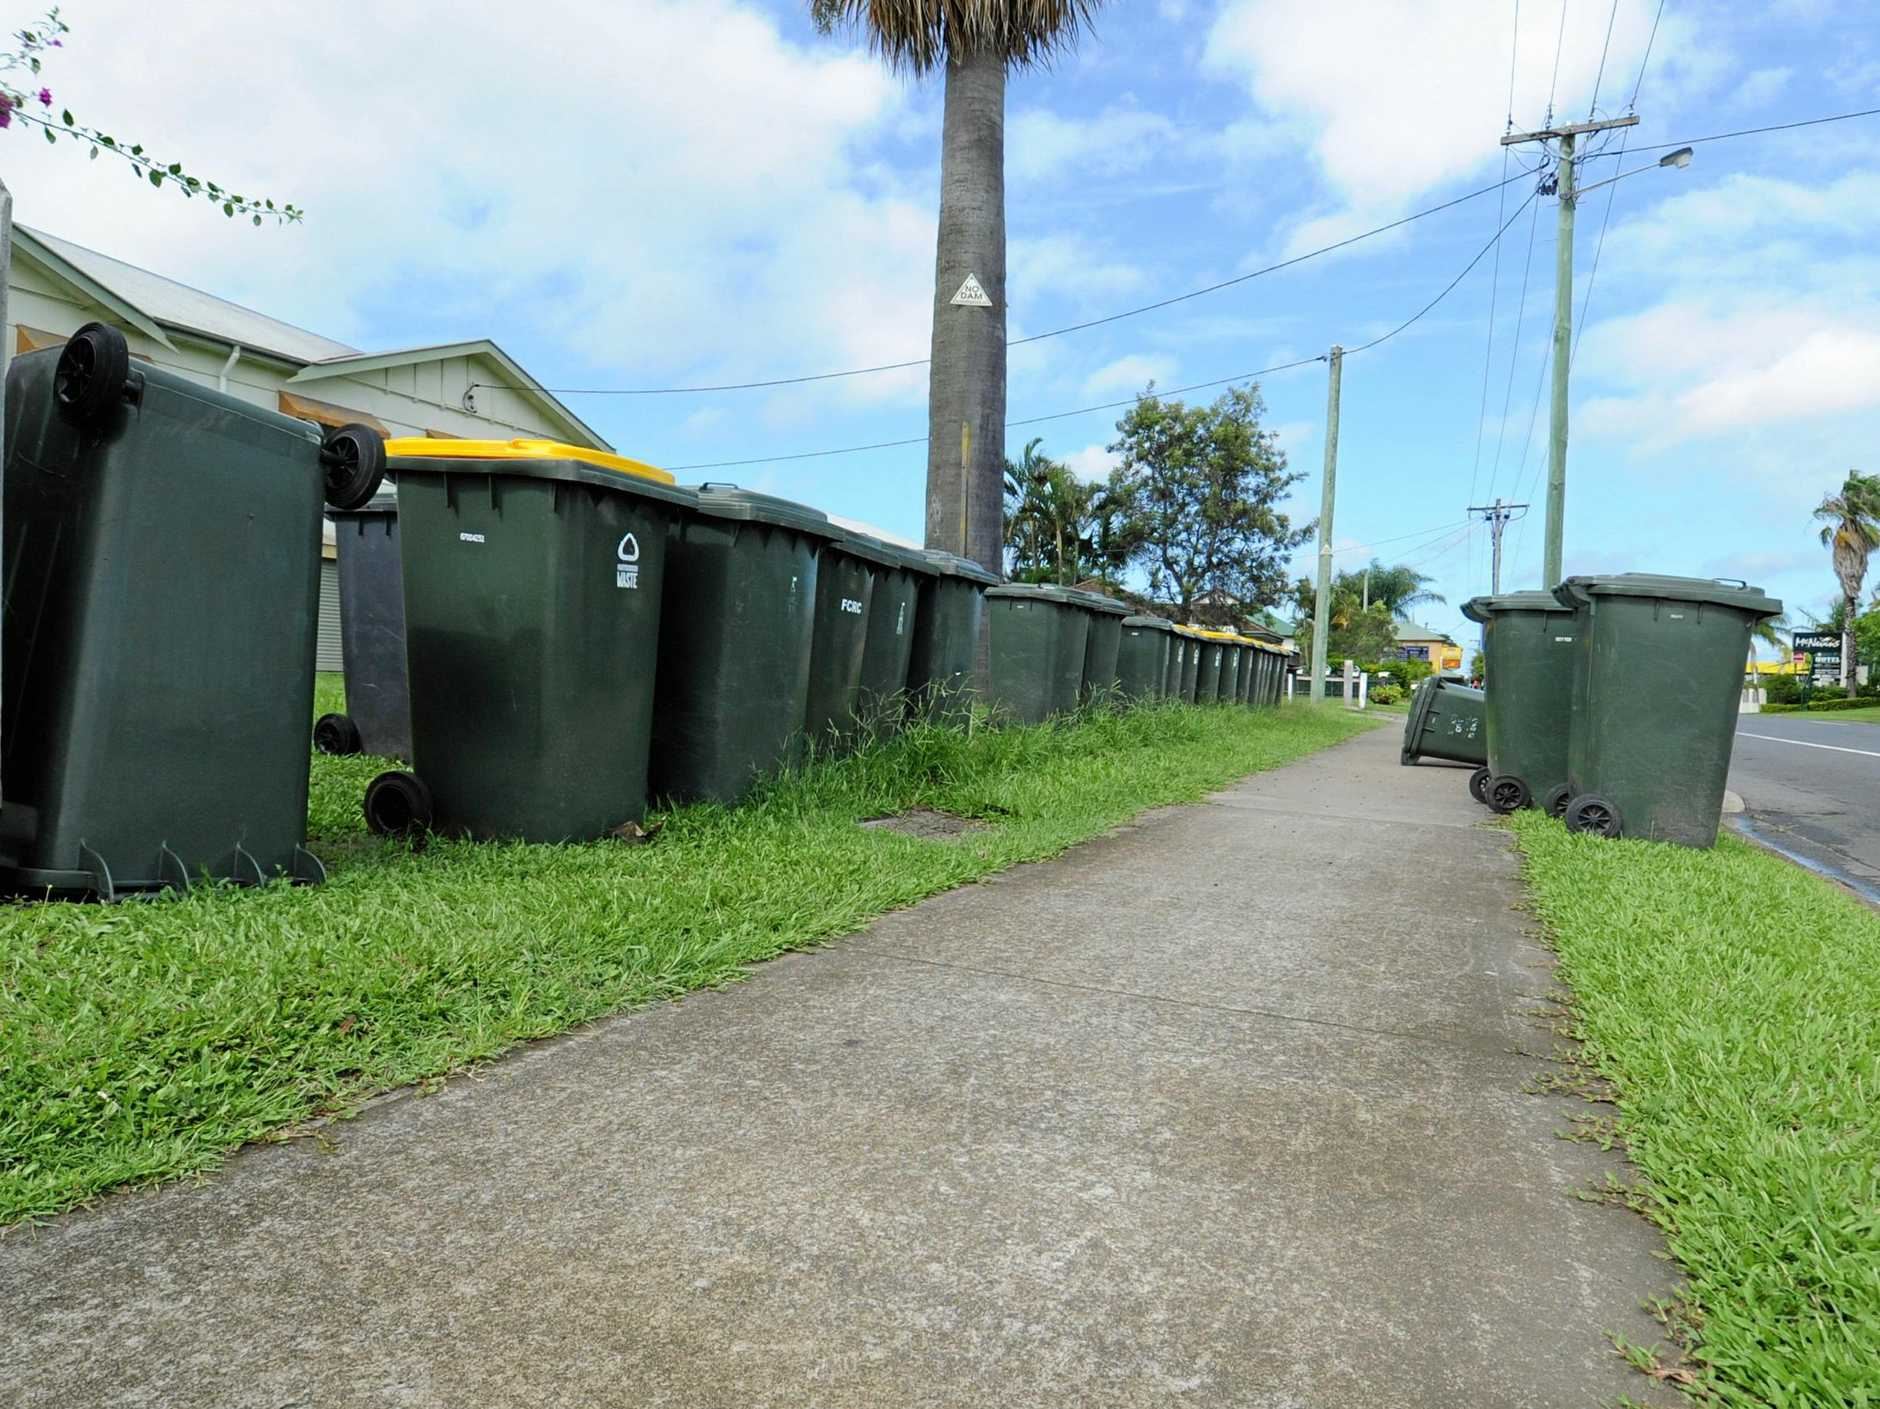 Bundaberg Regional Council says it will not be implementing new laws requiring residents to put their bins away within 24 hours.